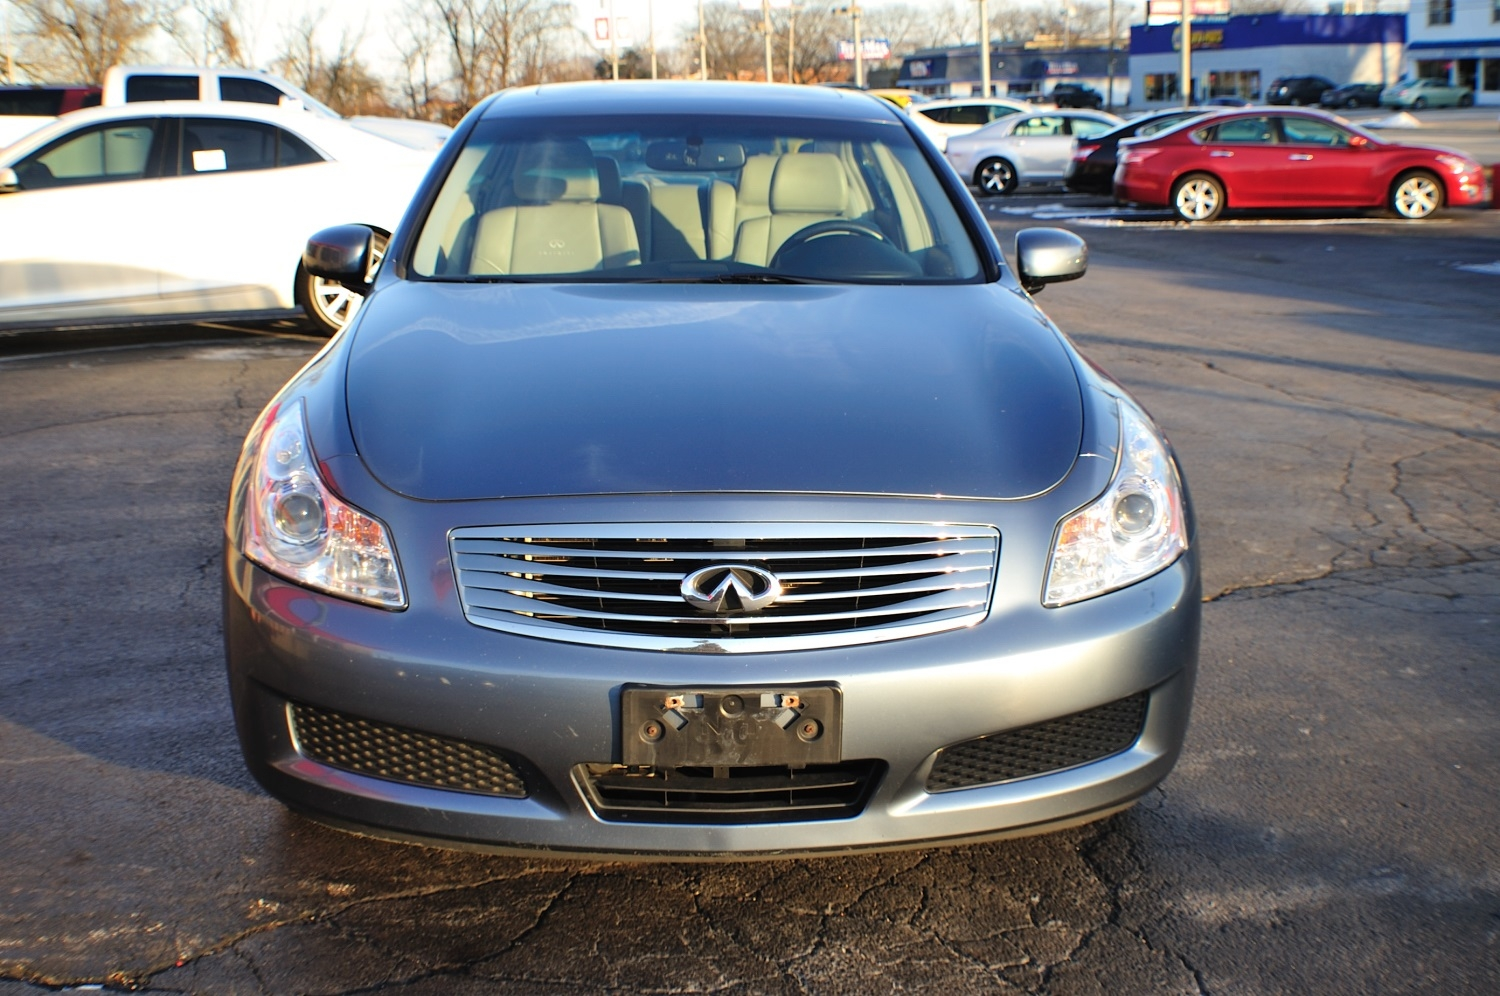 2009 Infiniti G35X Blue Sedan Sale Gurnee Kenosha Mchenry Chicago Illinois